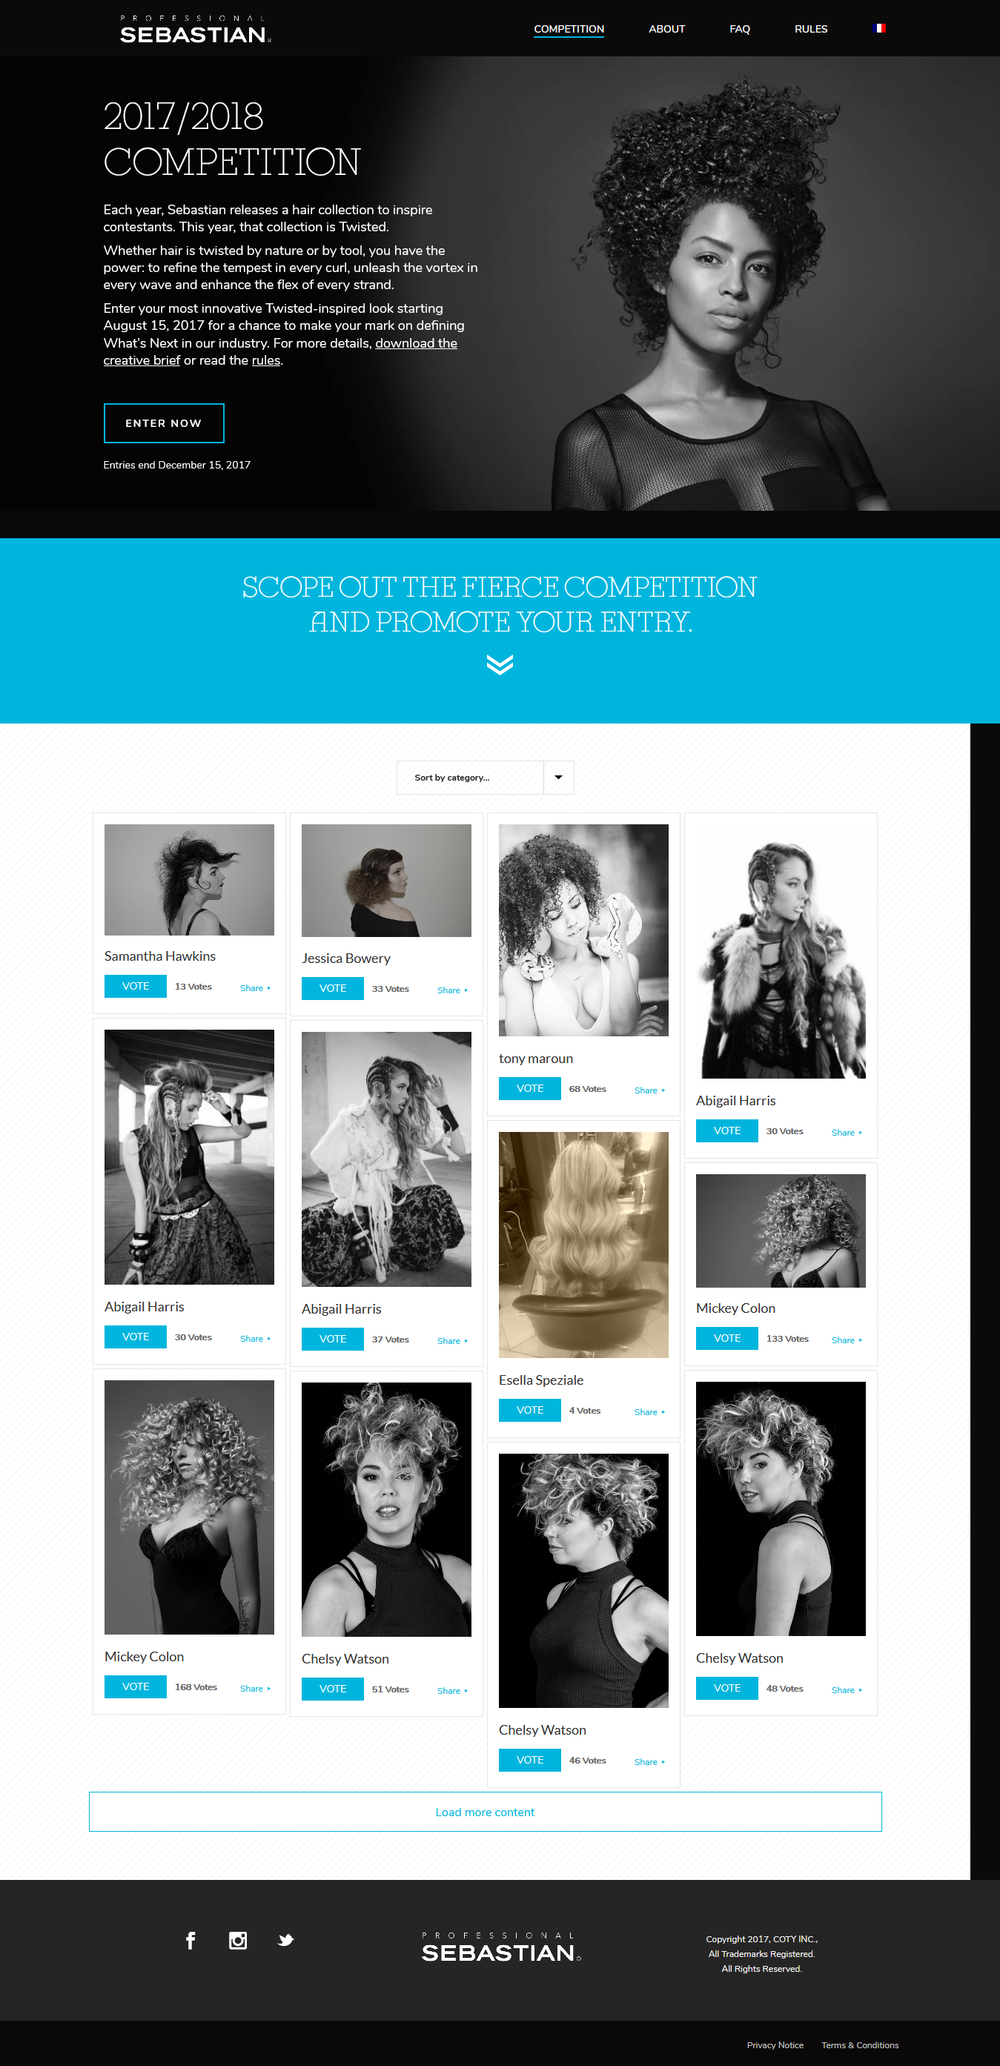 FireShot Screen Capture #025 - 'Competition - What's Next Awards' - sebastianwna_com_competition.png